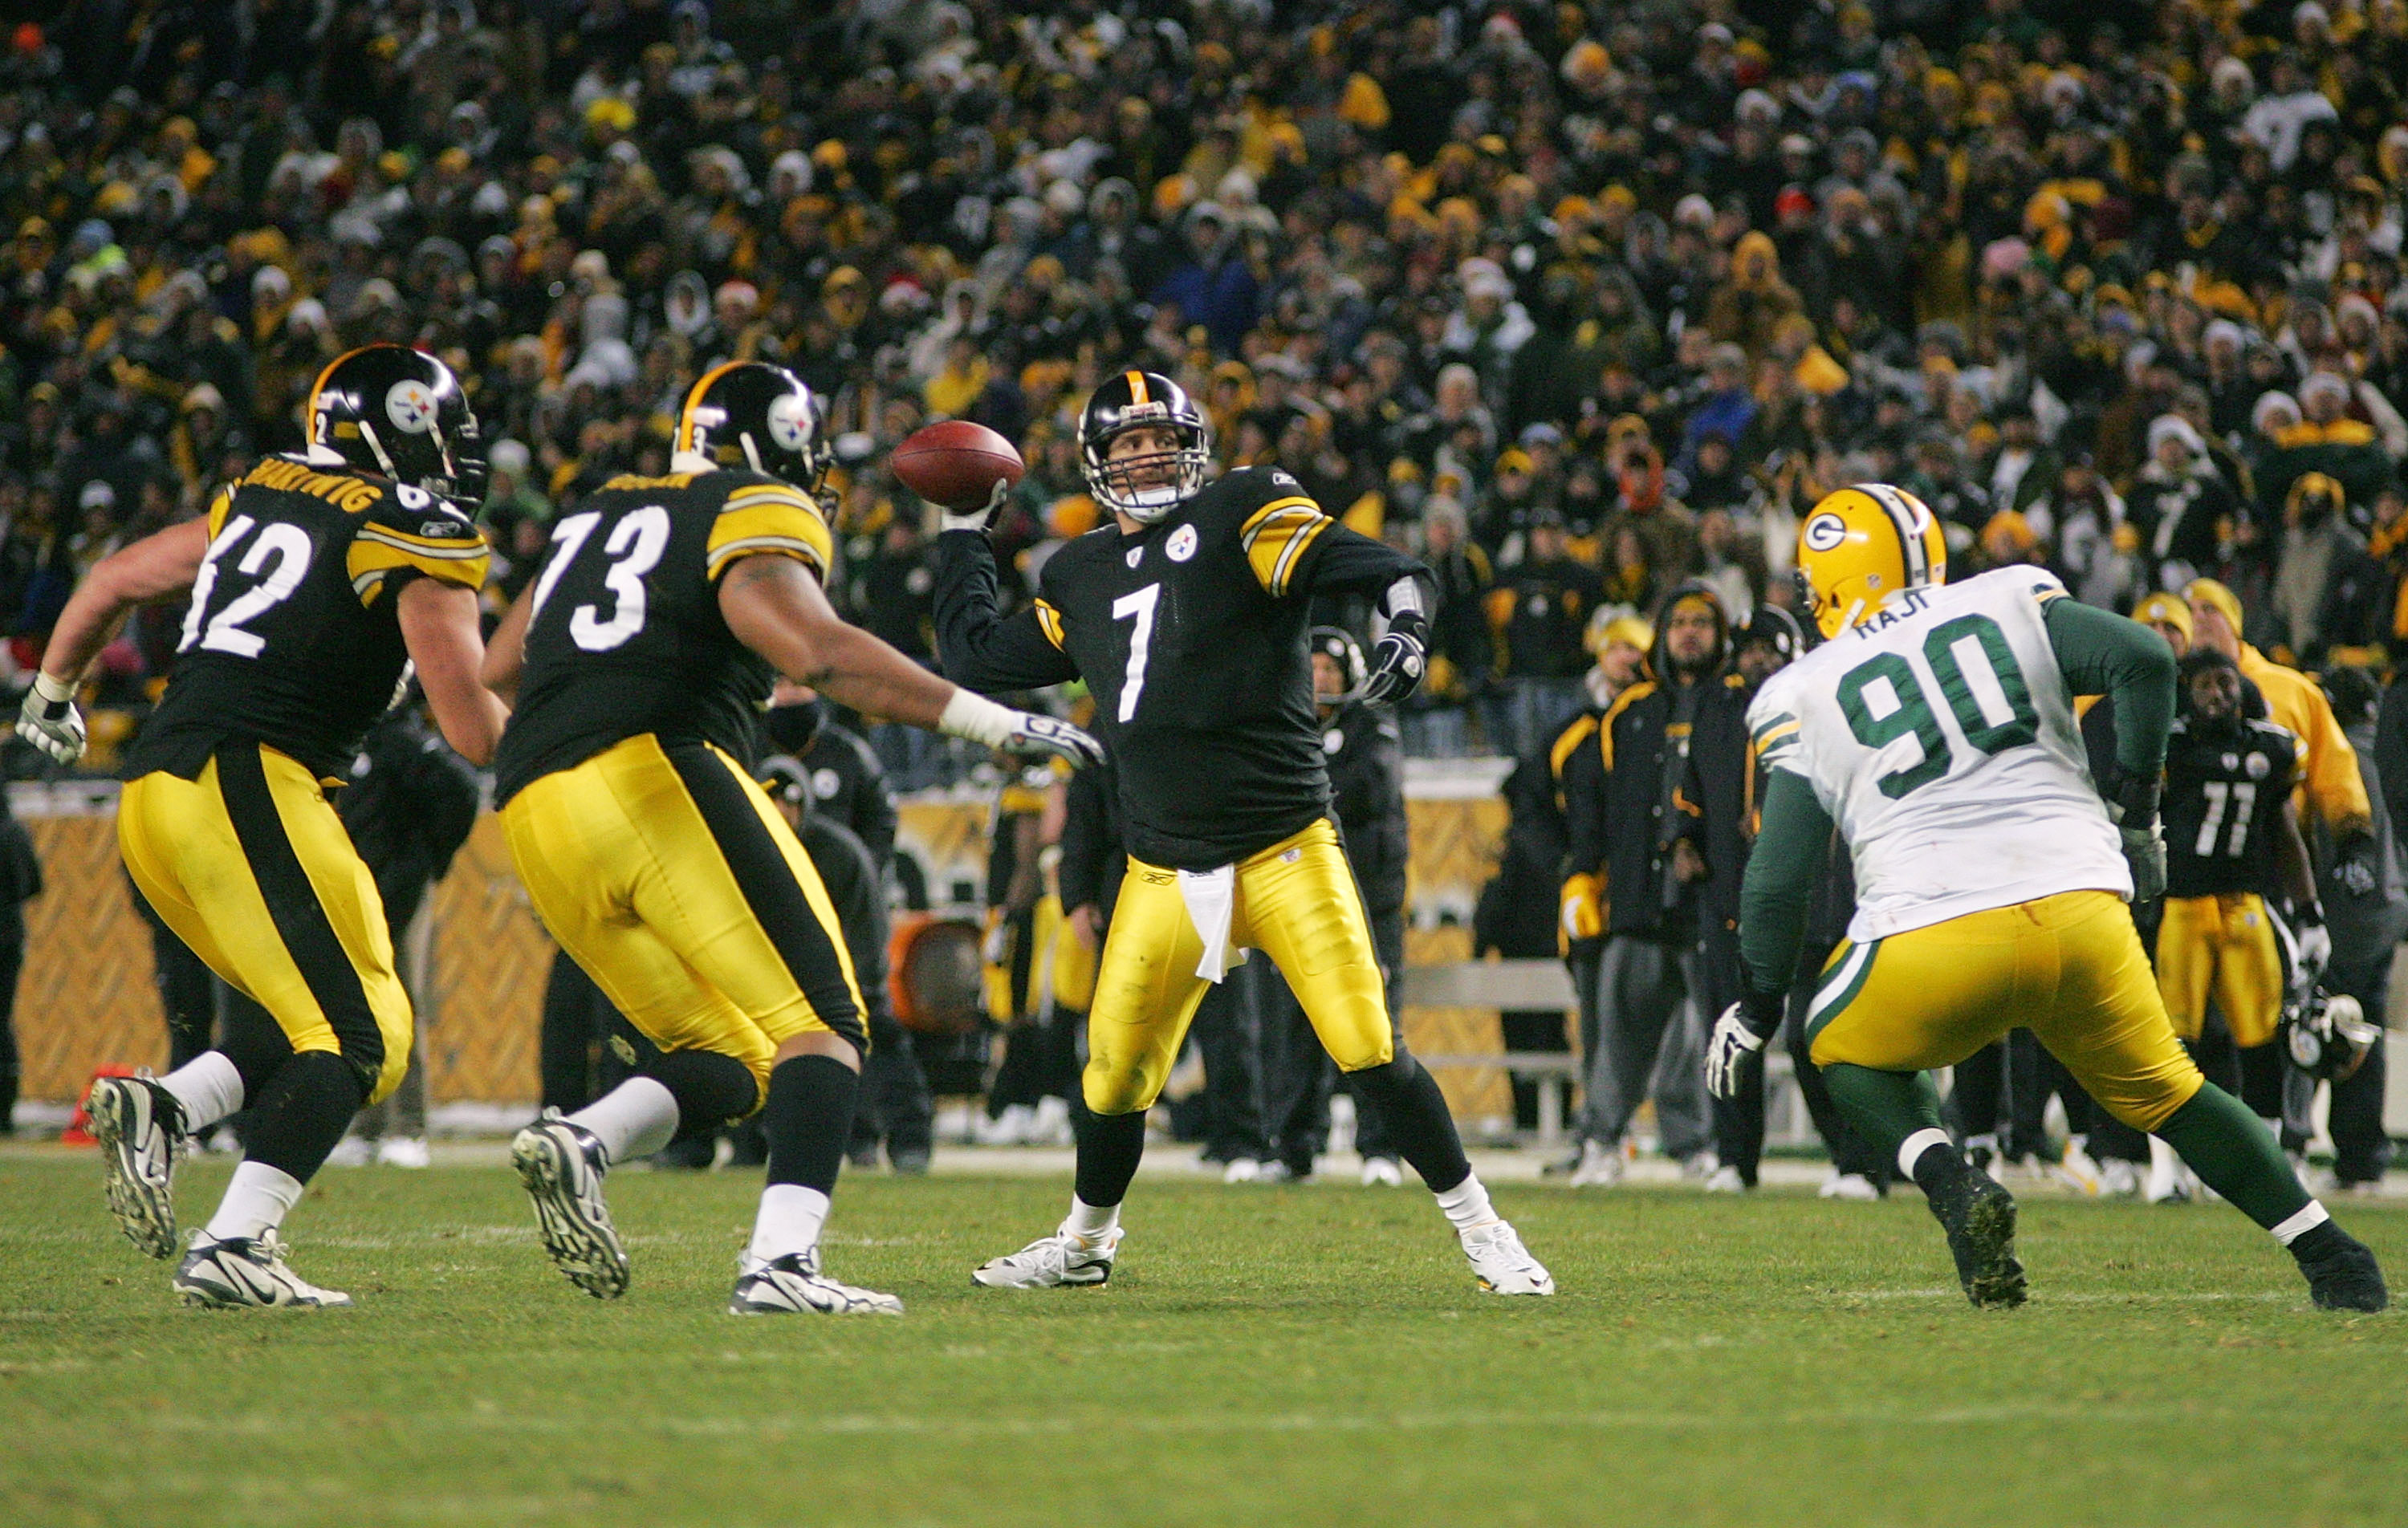 PITTSBURGH - DECEMBER 20: Ben Roethlisberger #7 of the Pittsburgh Steelers throws the game winning touchdown pass in the fourth quarter in front of BJ Raji #90 of the Green Bay Packers during the game on December 20, 2009 at Heinz Field in Pittsburgh, Pen